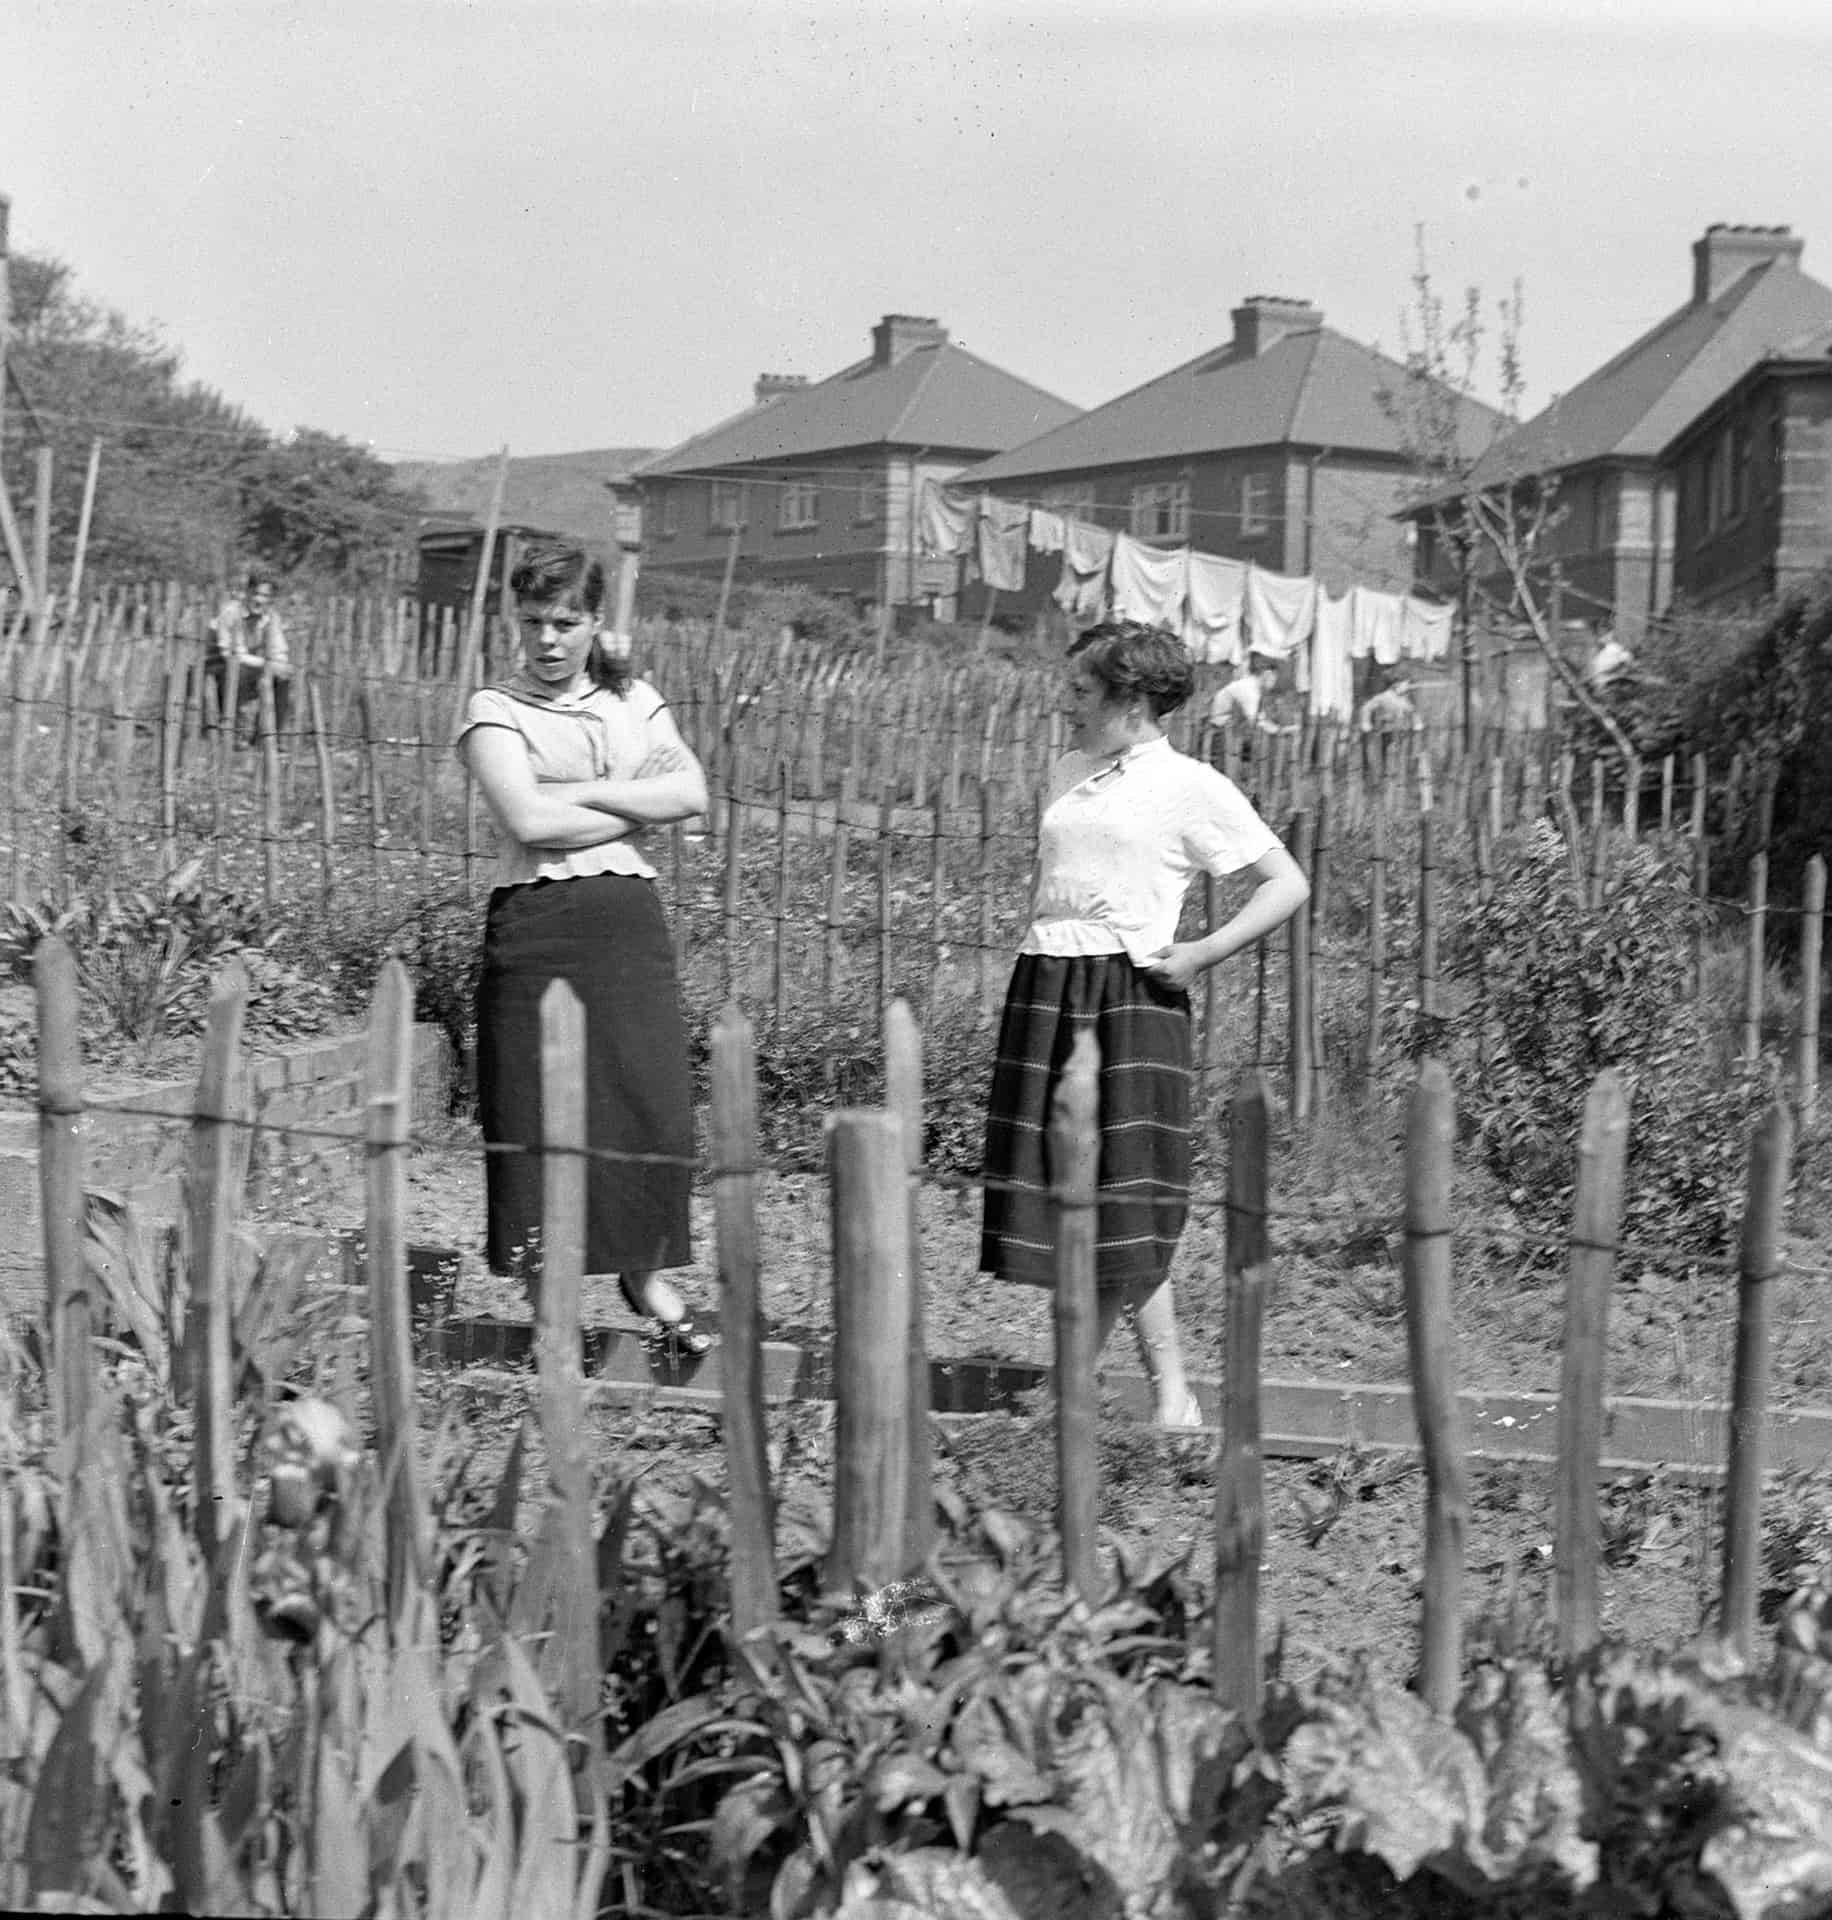 This is the Frank sisters from next door. You can see all this picket fencing, that was the council house sort of regulation at the time which was in about the 50s. You didn't have fencing at all like today so you could see what all the neighbours were doing.